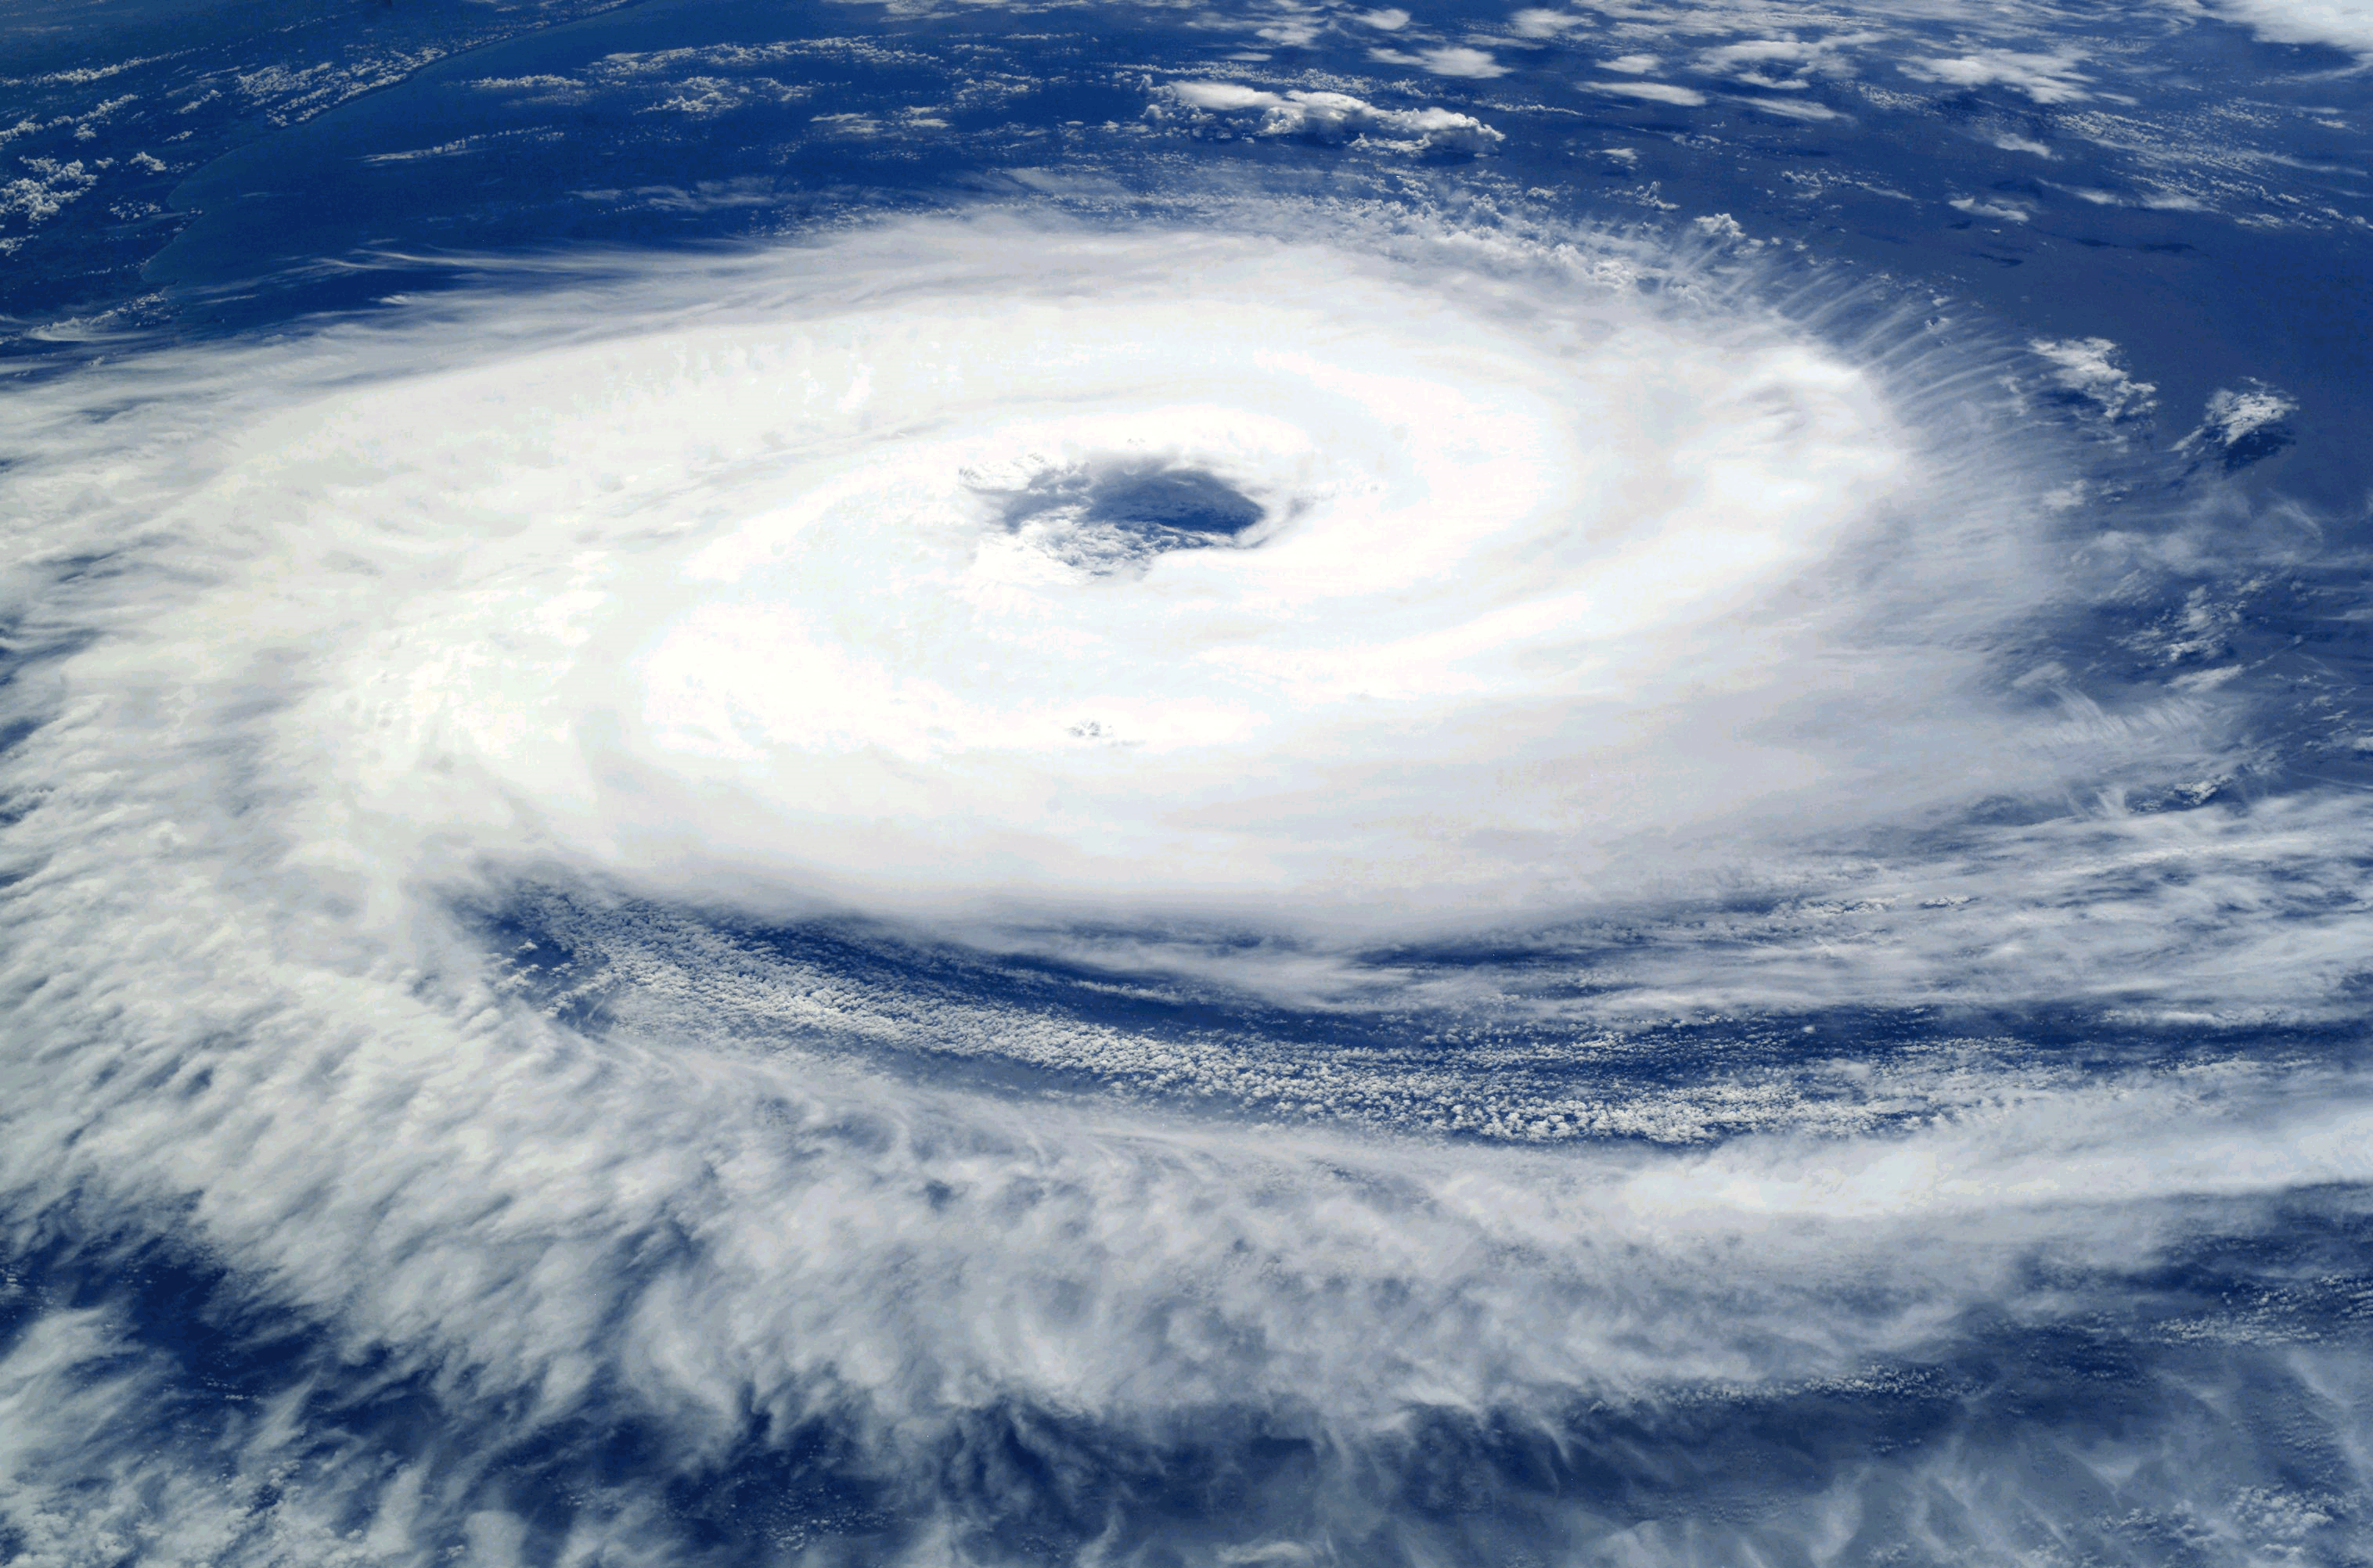 Image of a cyclone from high in the sky